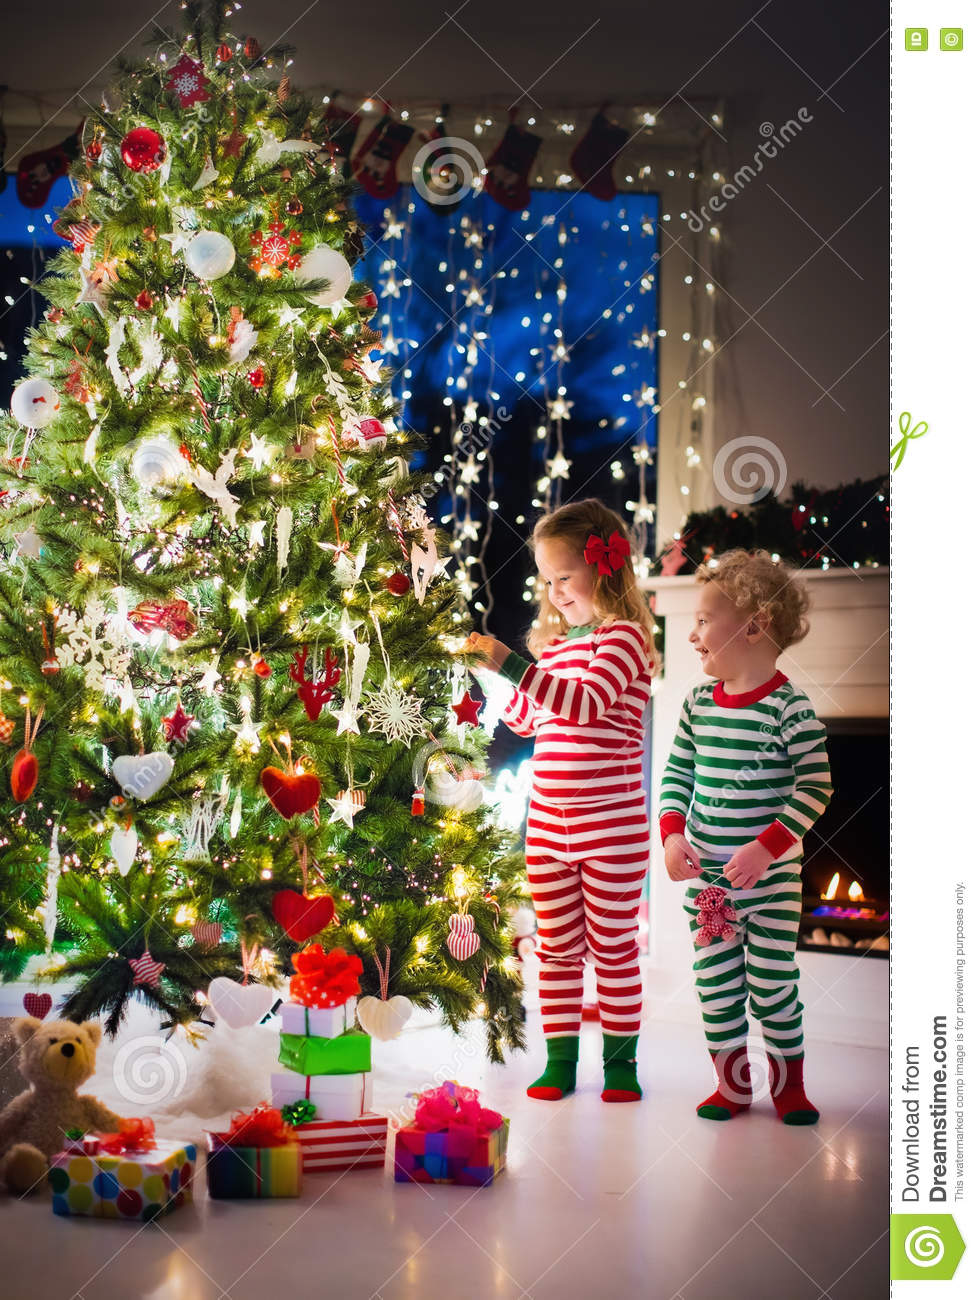 Kids Decorating Christmas Tree Stock Image Image of green